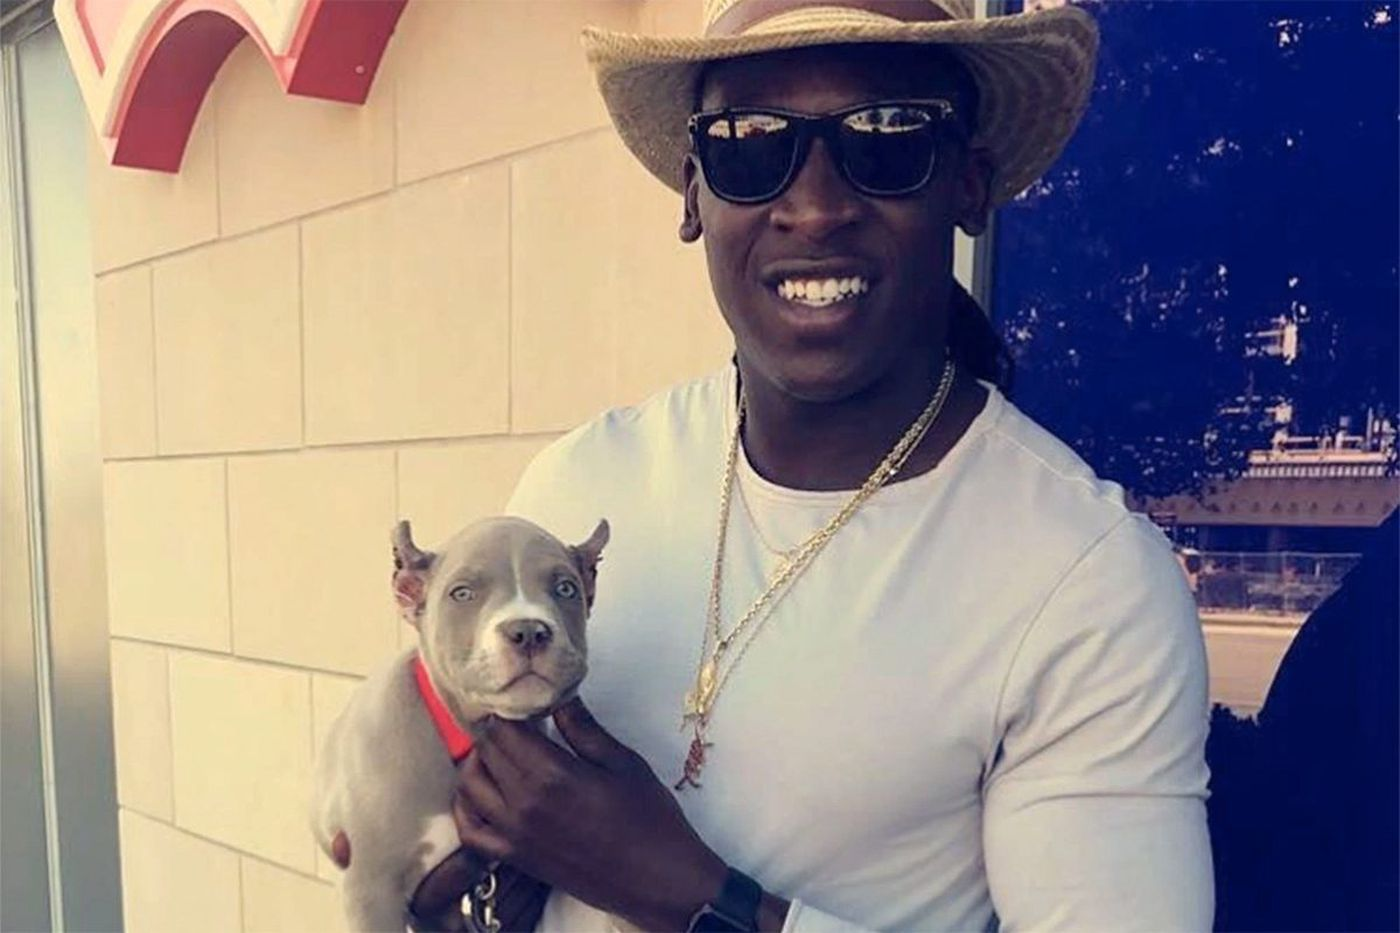 Cowboys player's kidnapped dog returned, but the story gets weird